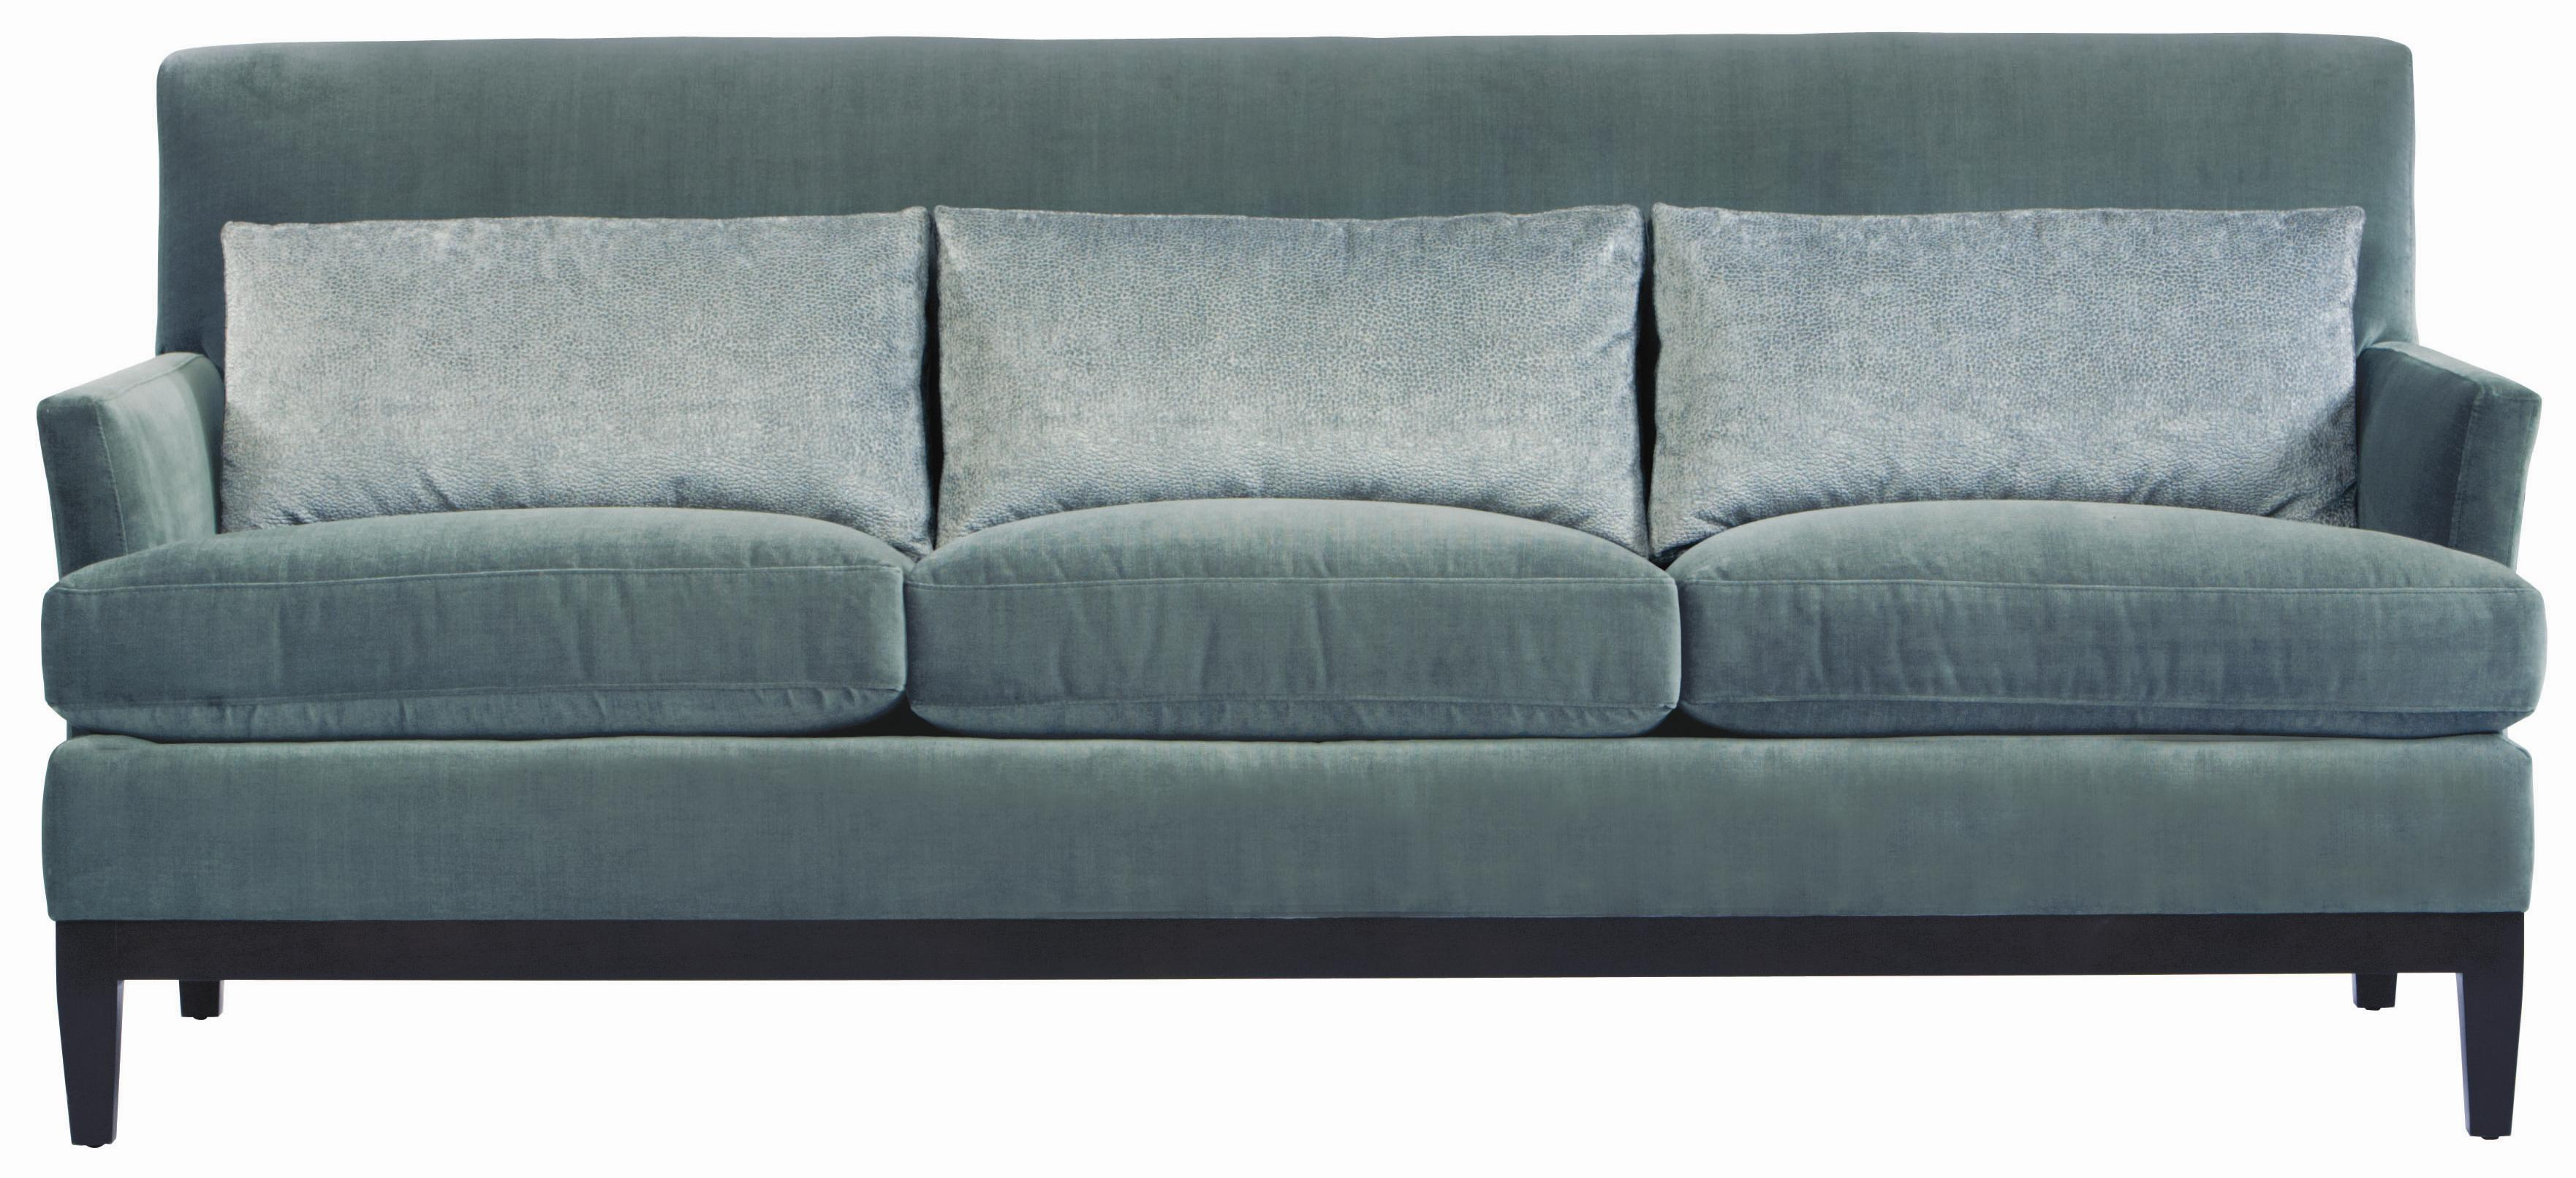 Bernhardt interiors cumberland n2727 traditionally for Bernhardt chaise lounge